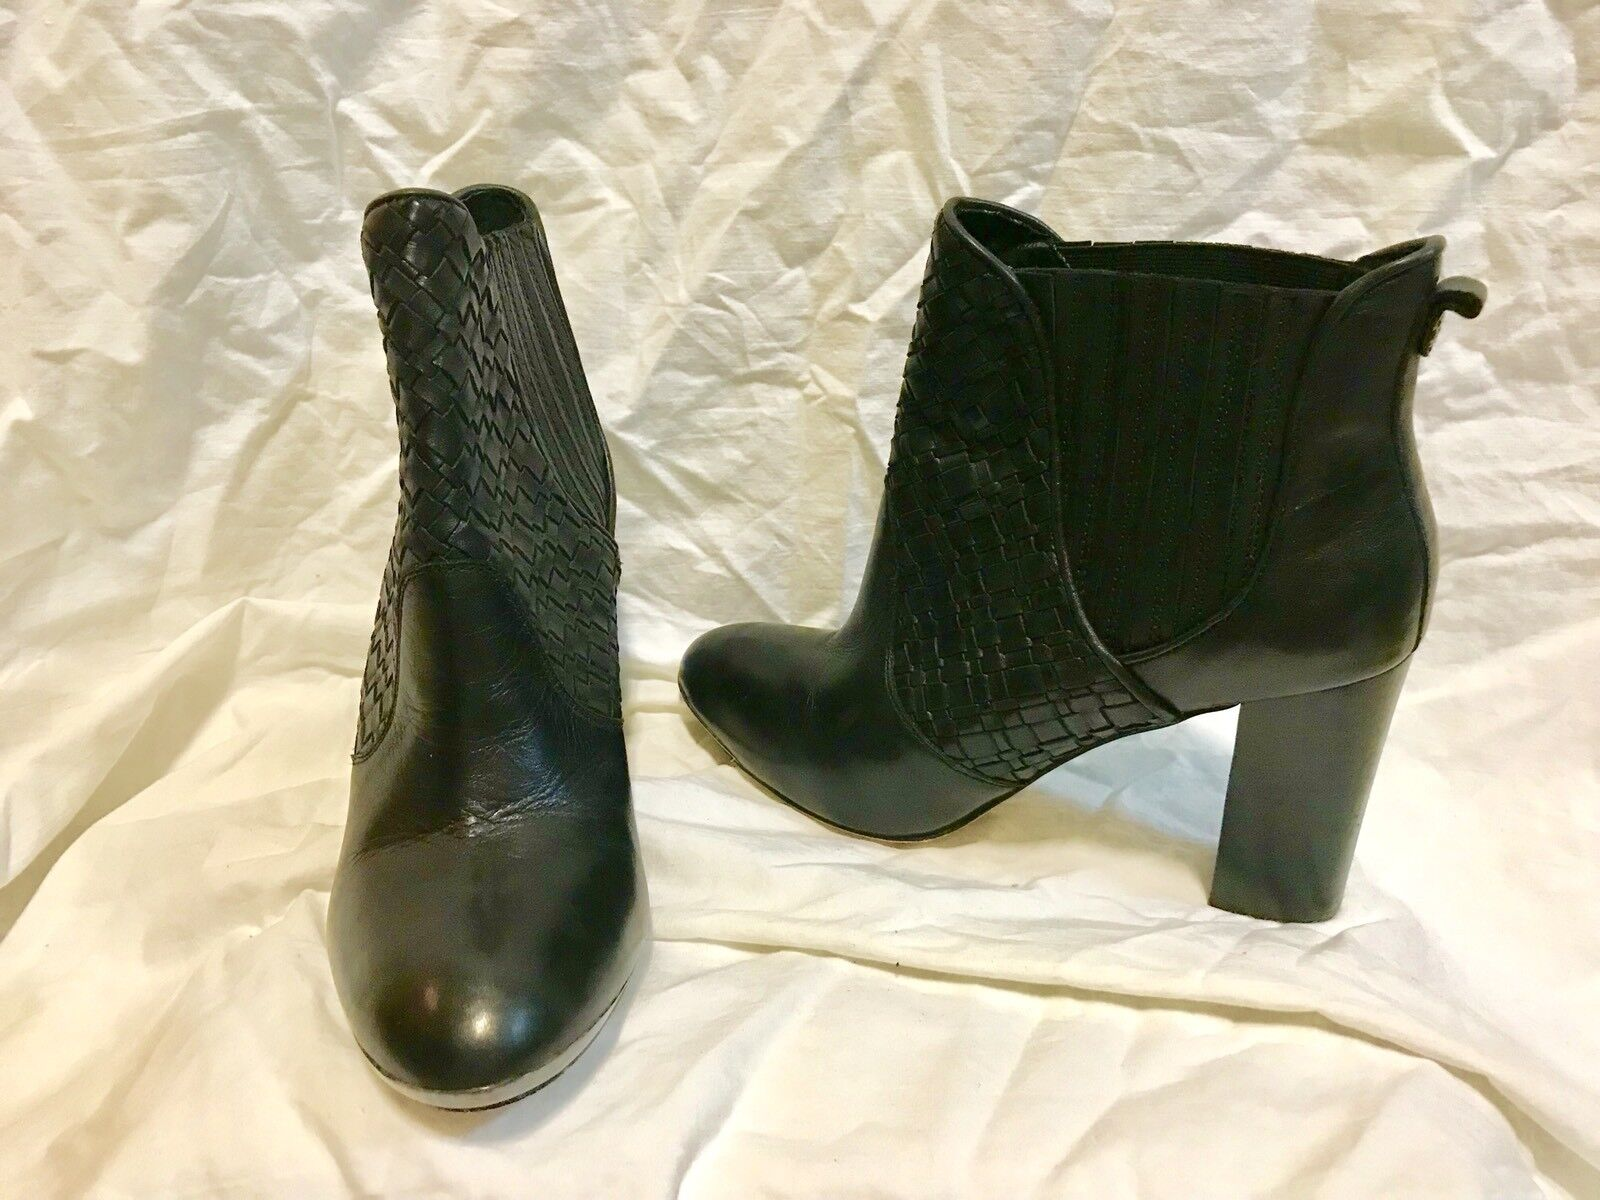 ELLIOT LUCCA LEATHER PULL ON ANKLE BOOTS SZ 9.5 M MINT